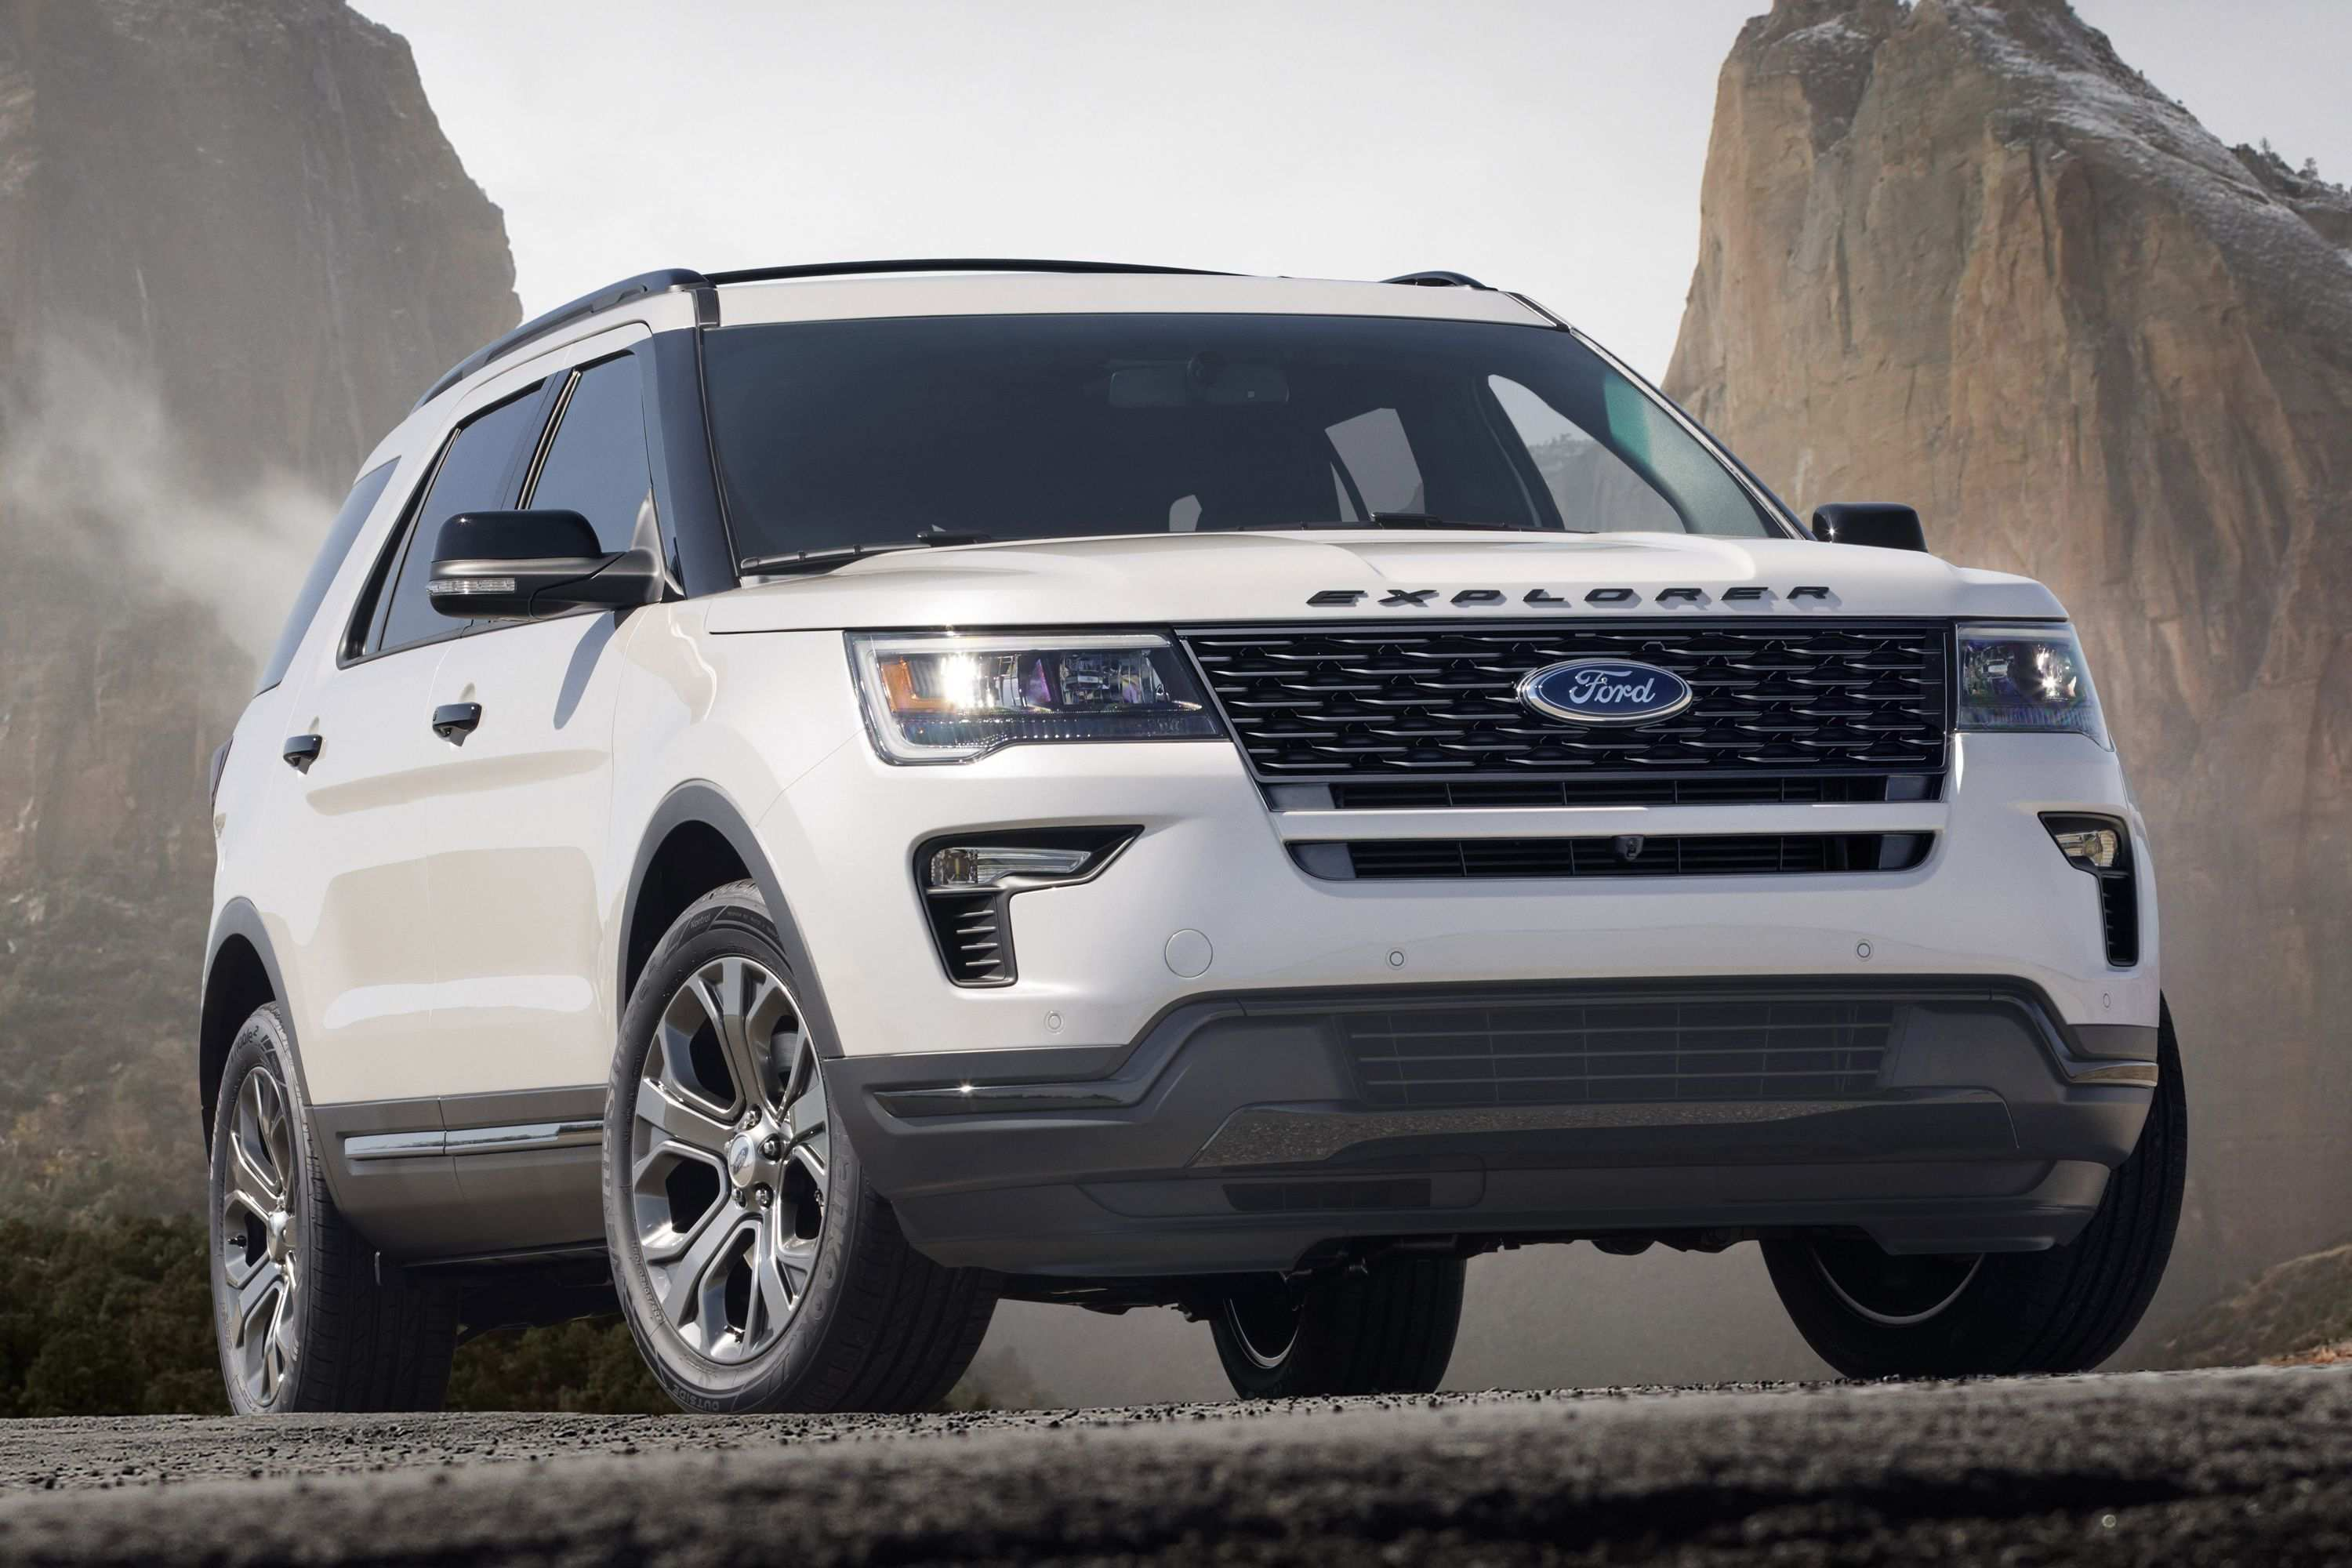 19 Great 2020 Ford Explorer Design Configurations by 2020 Ford Explorer Design